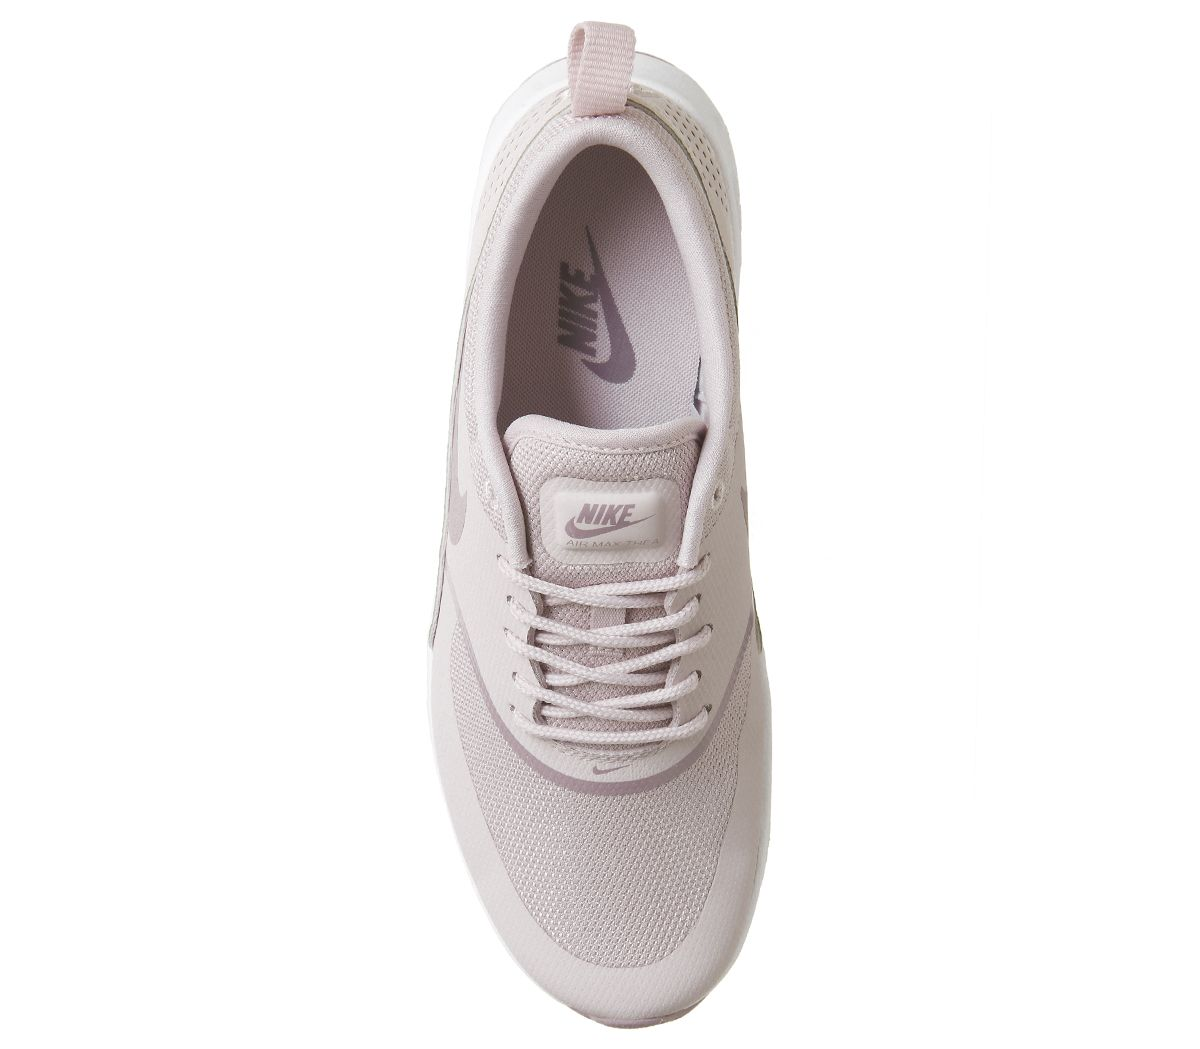 competitive price 5c997 cadff Nike Air Max Thea Barely Rose Elemental Rose White - Hers trainers